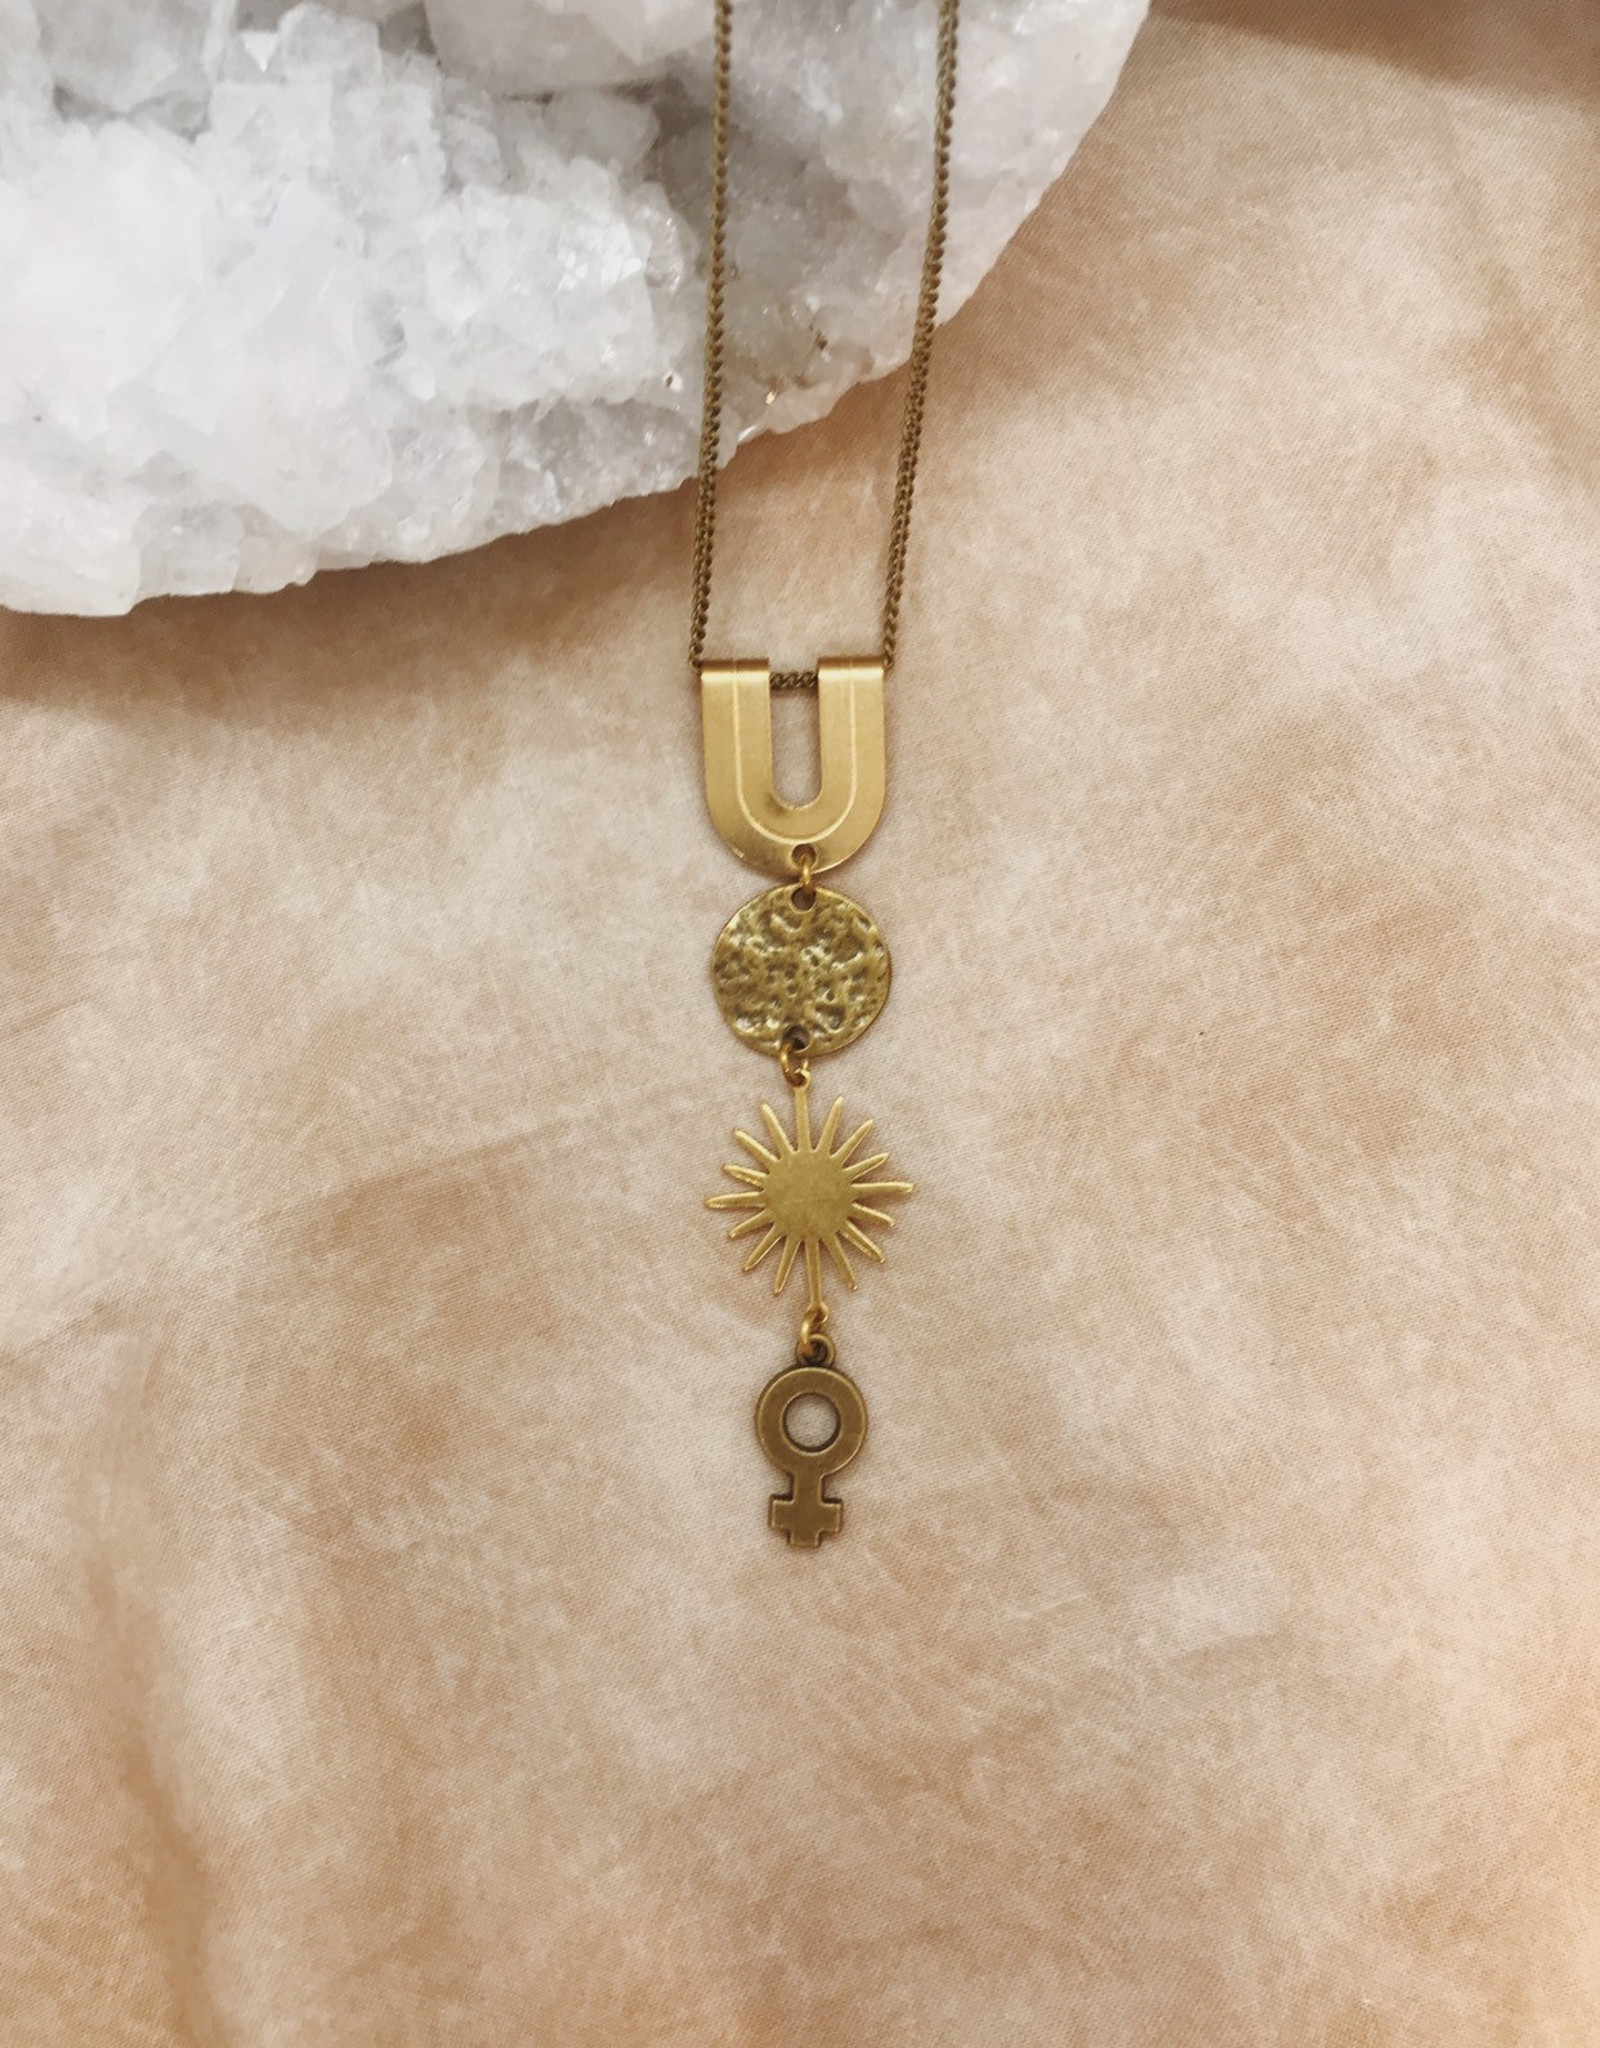 Flatwoods Fawn Decuma Necklace with Venus, Star, and Moon / Protection Talisman